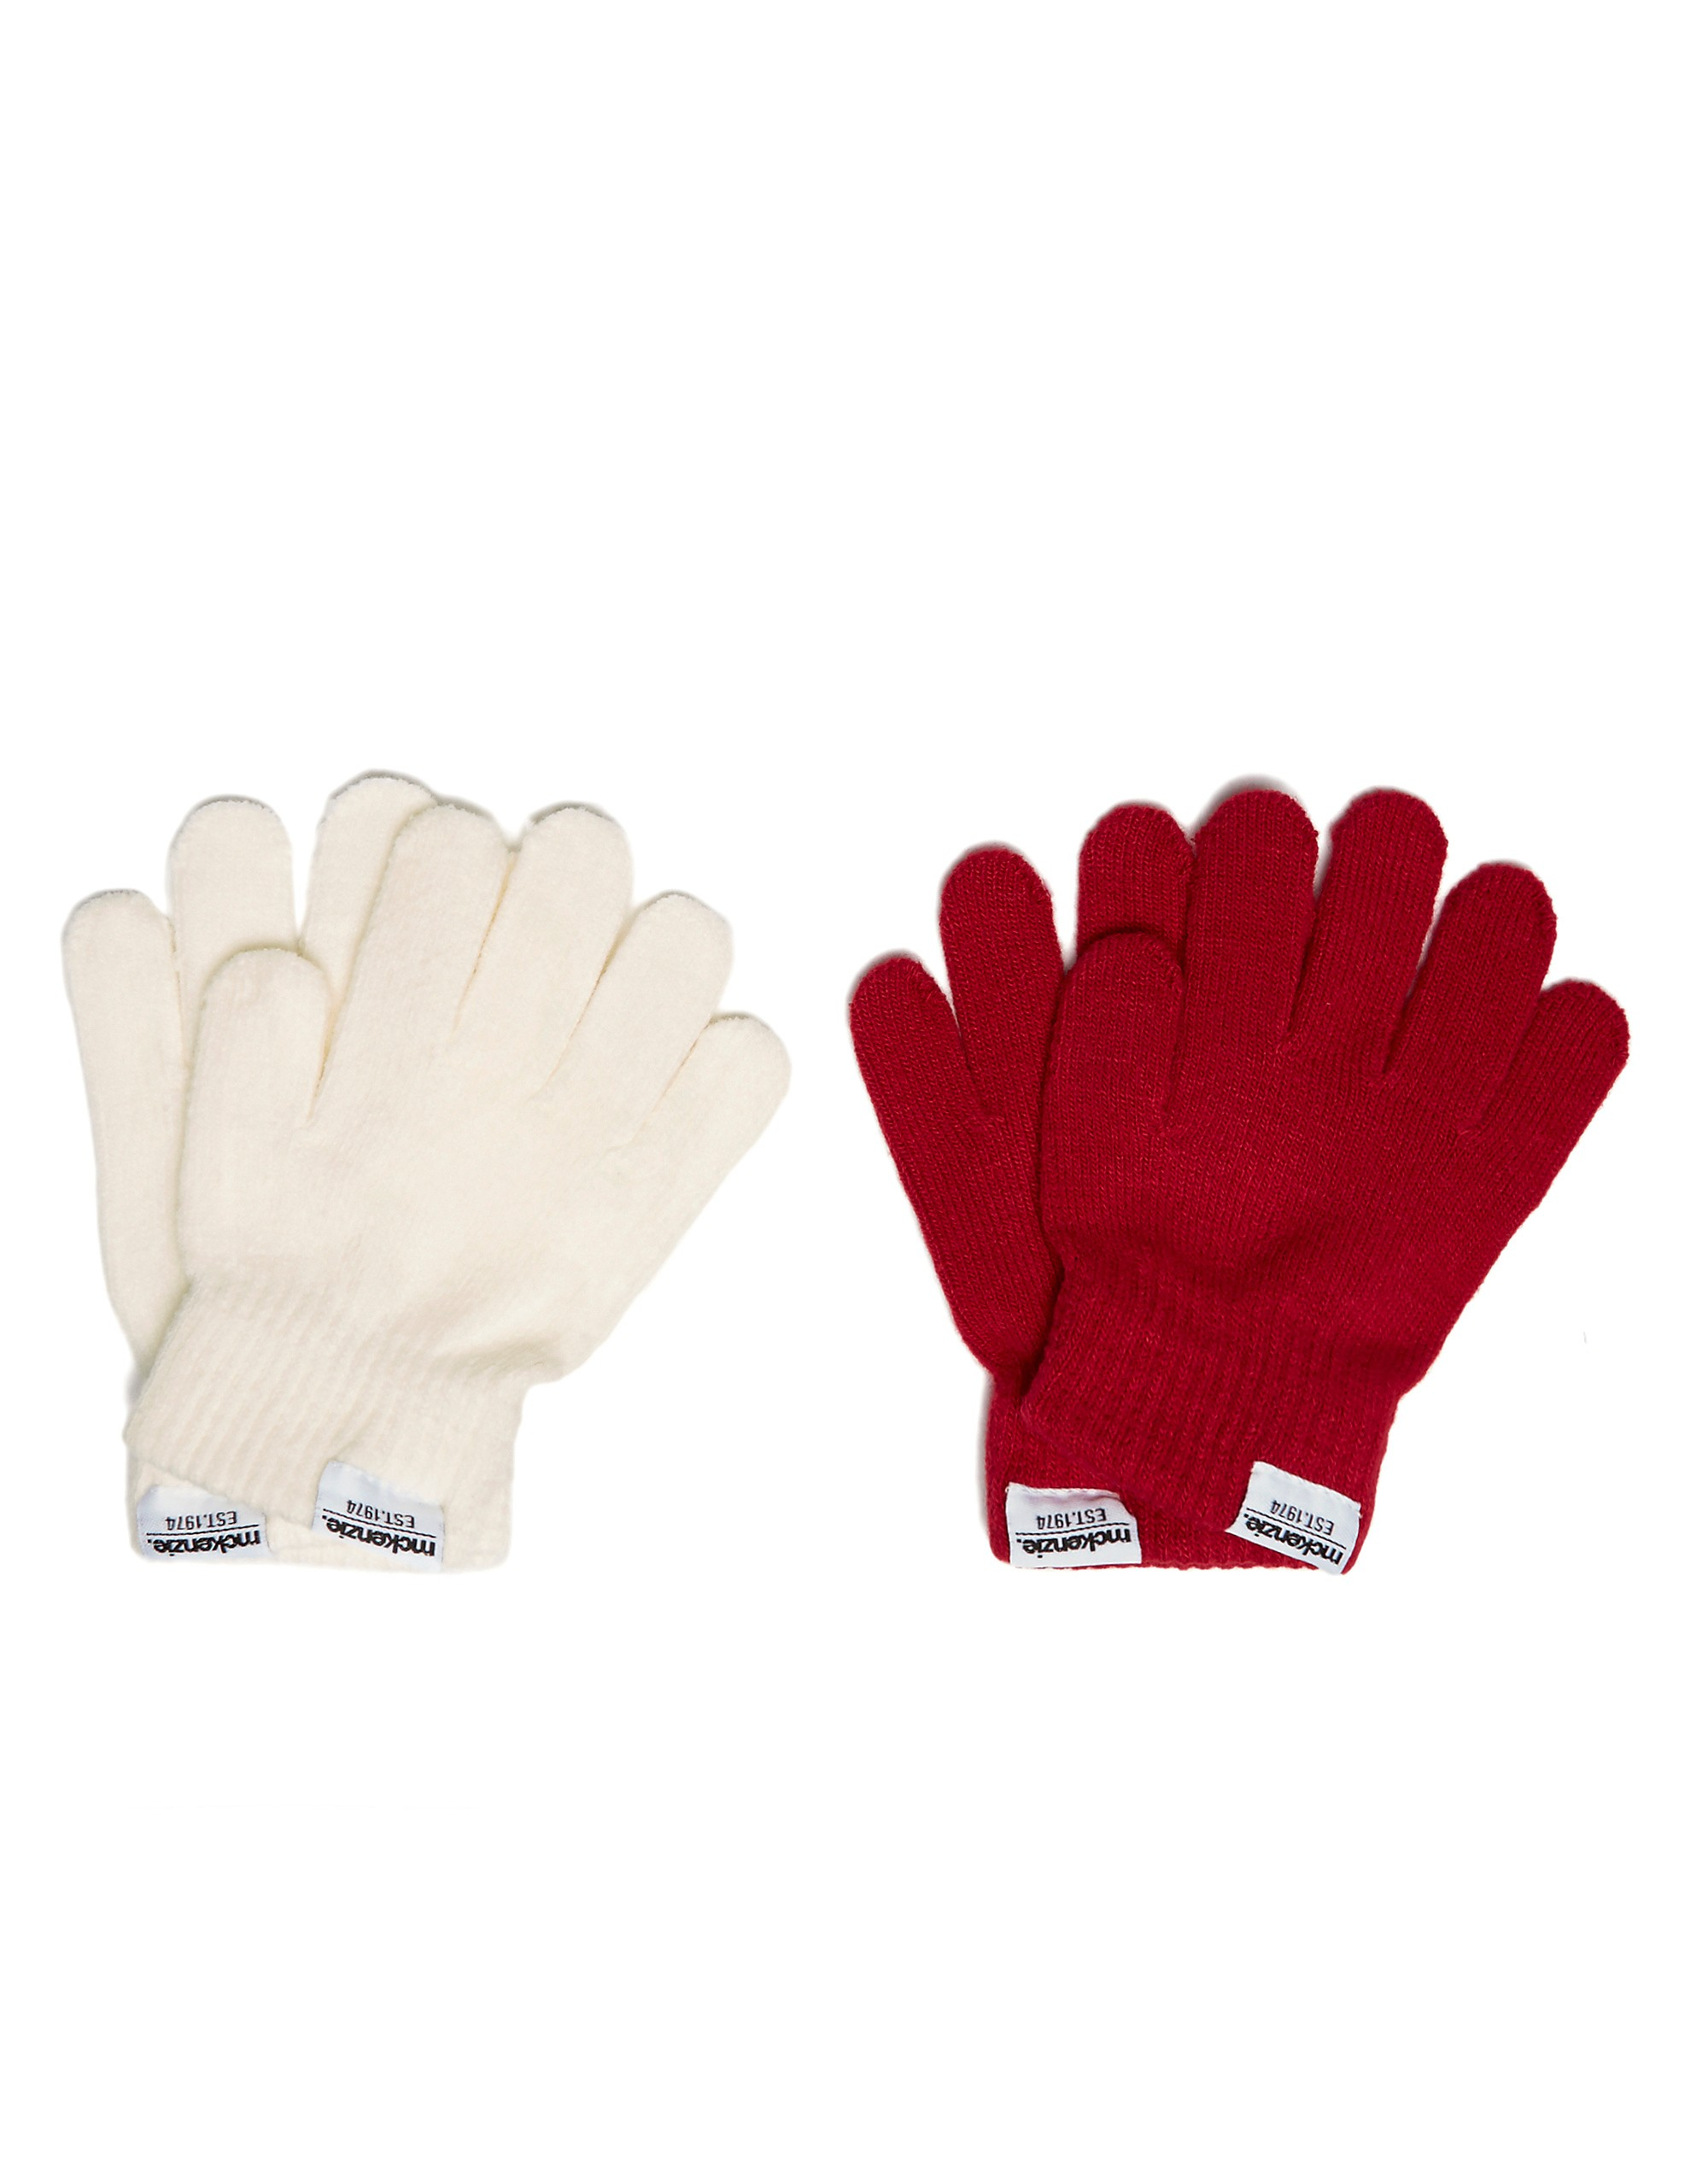 McKenzie Lowe Gloves 2 Pack